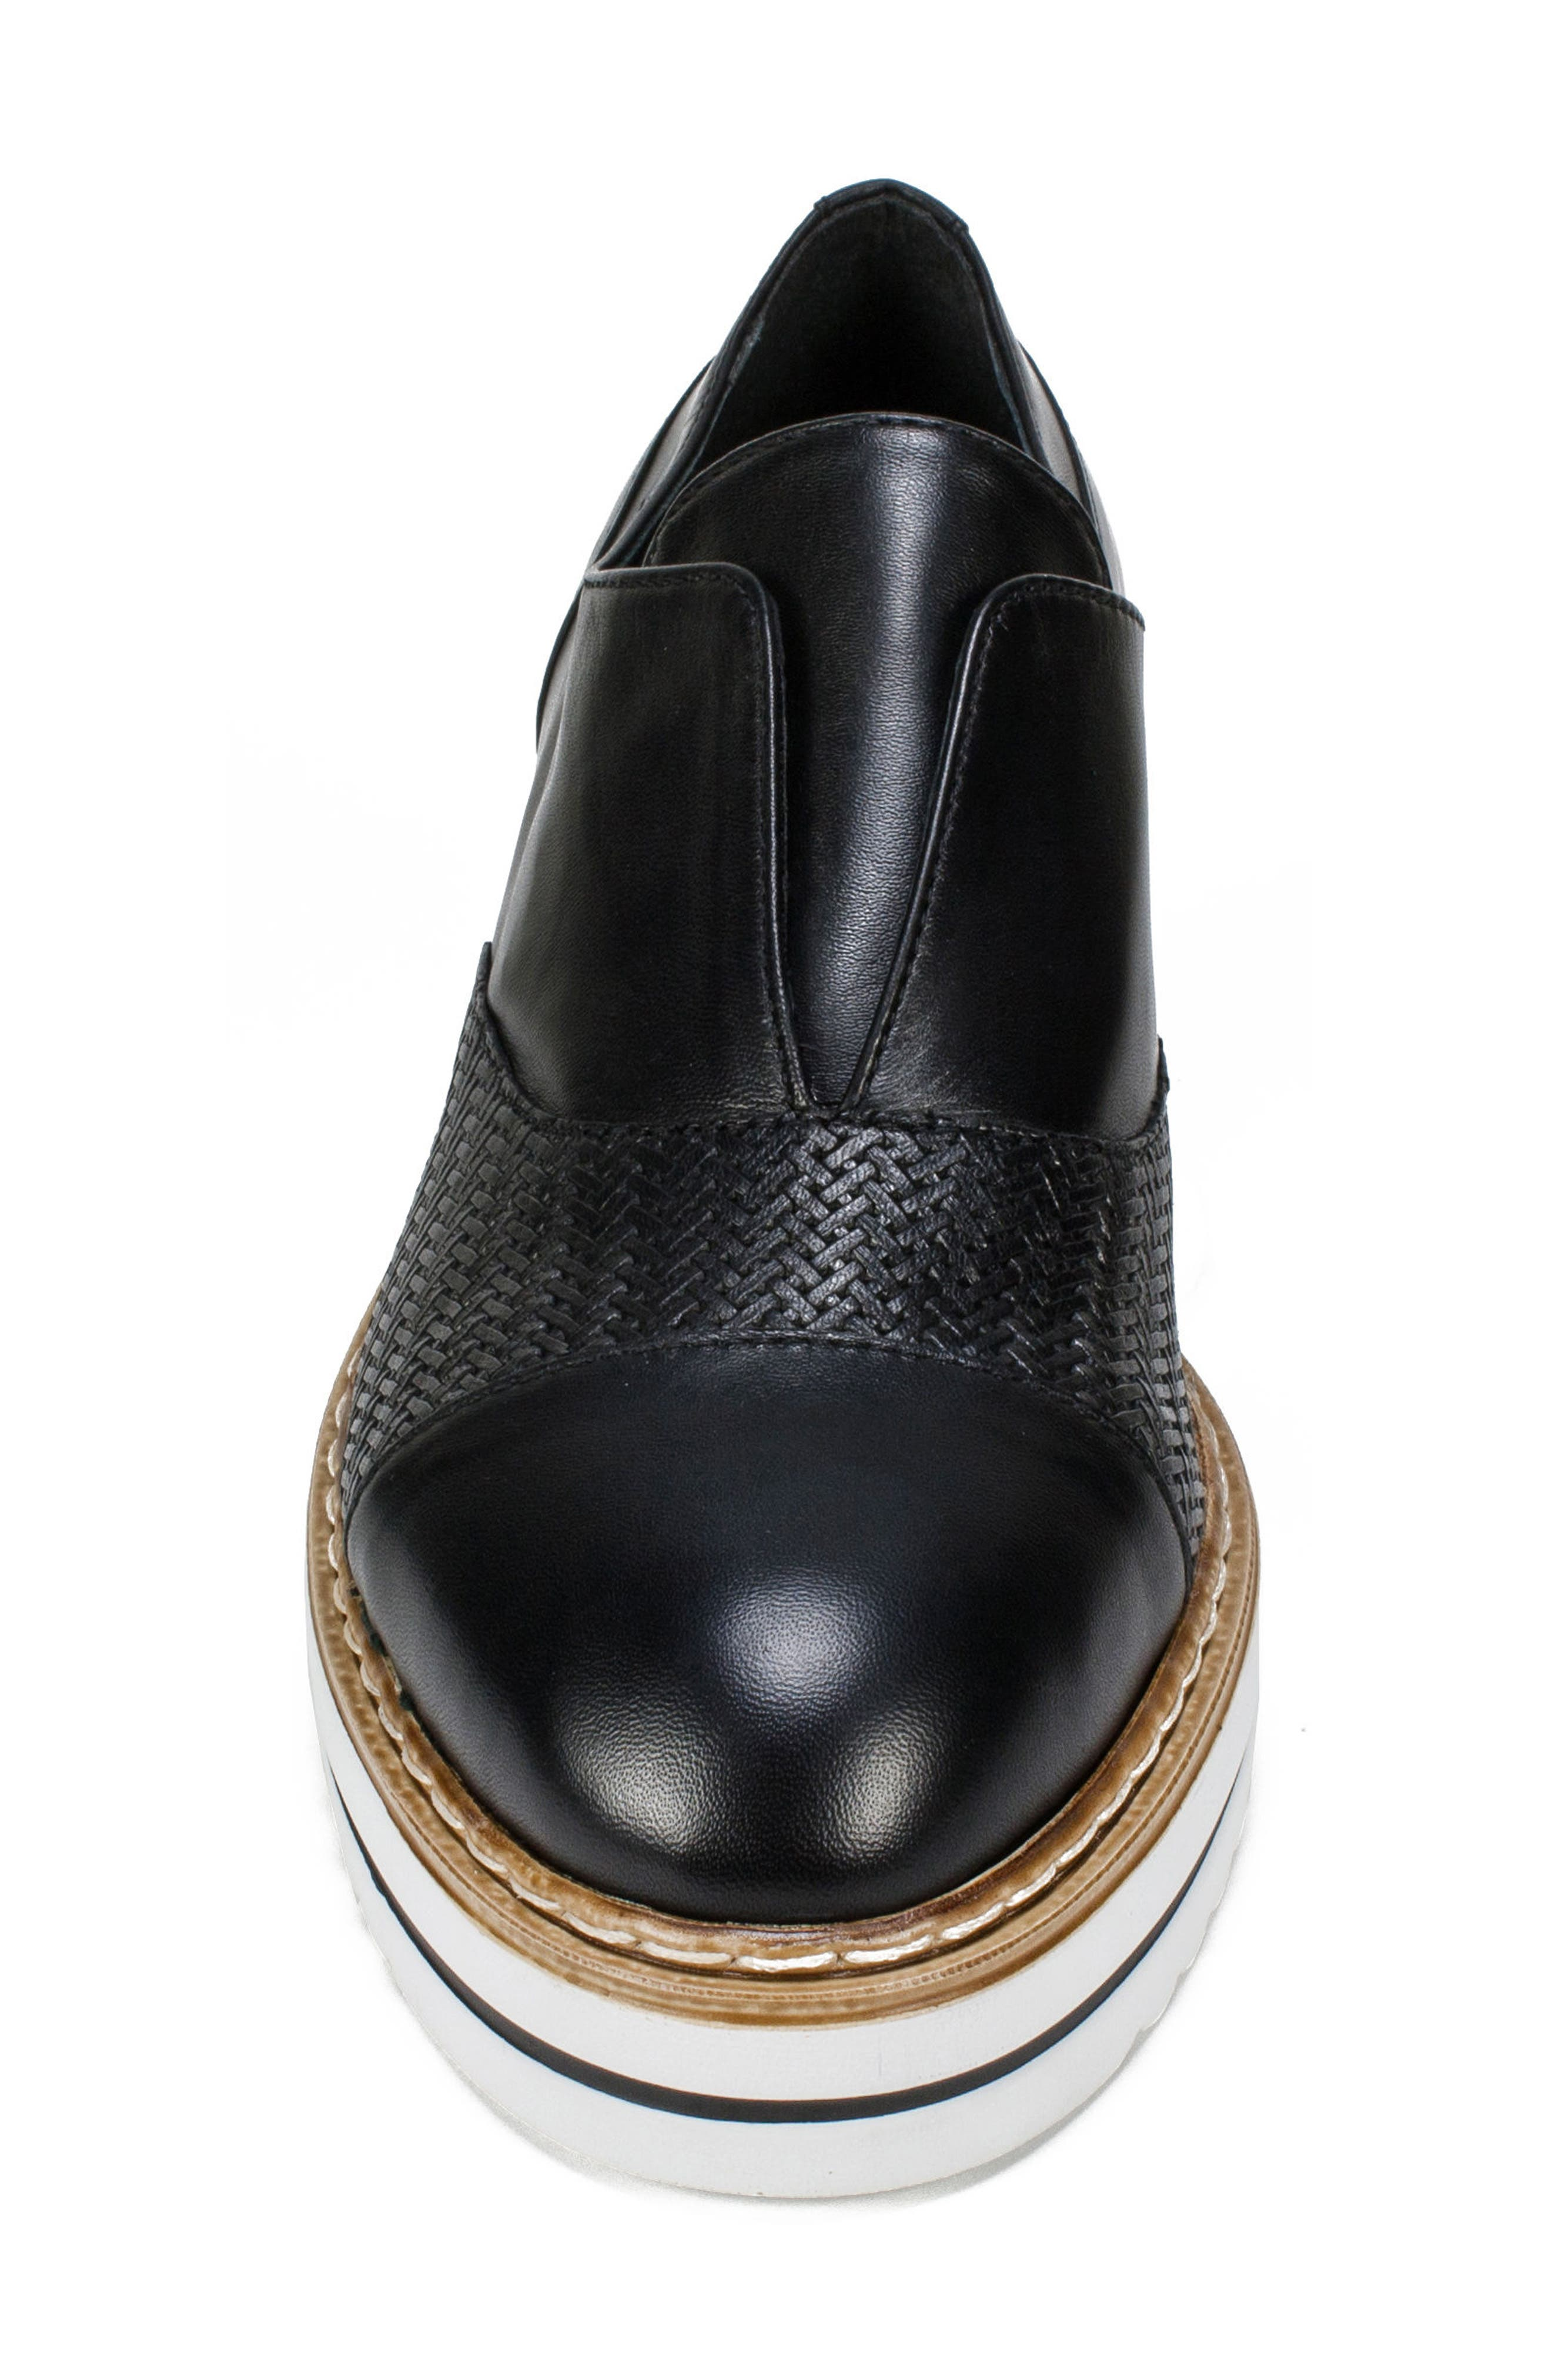 Bliss Loafer,                             Alternate thumbnail 4, color,                             Black Leather